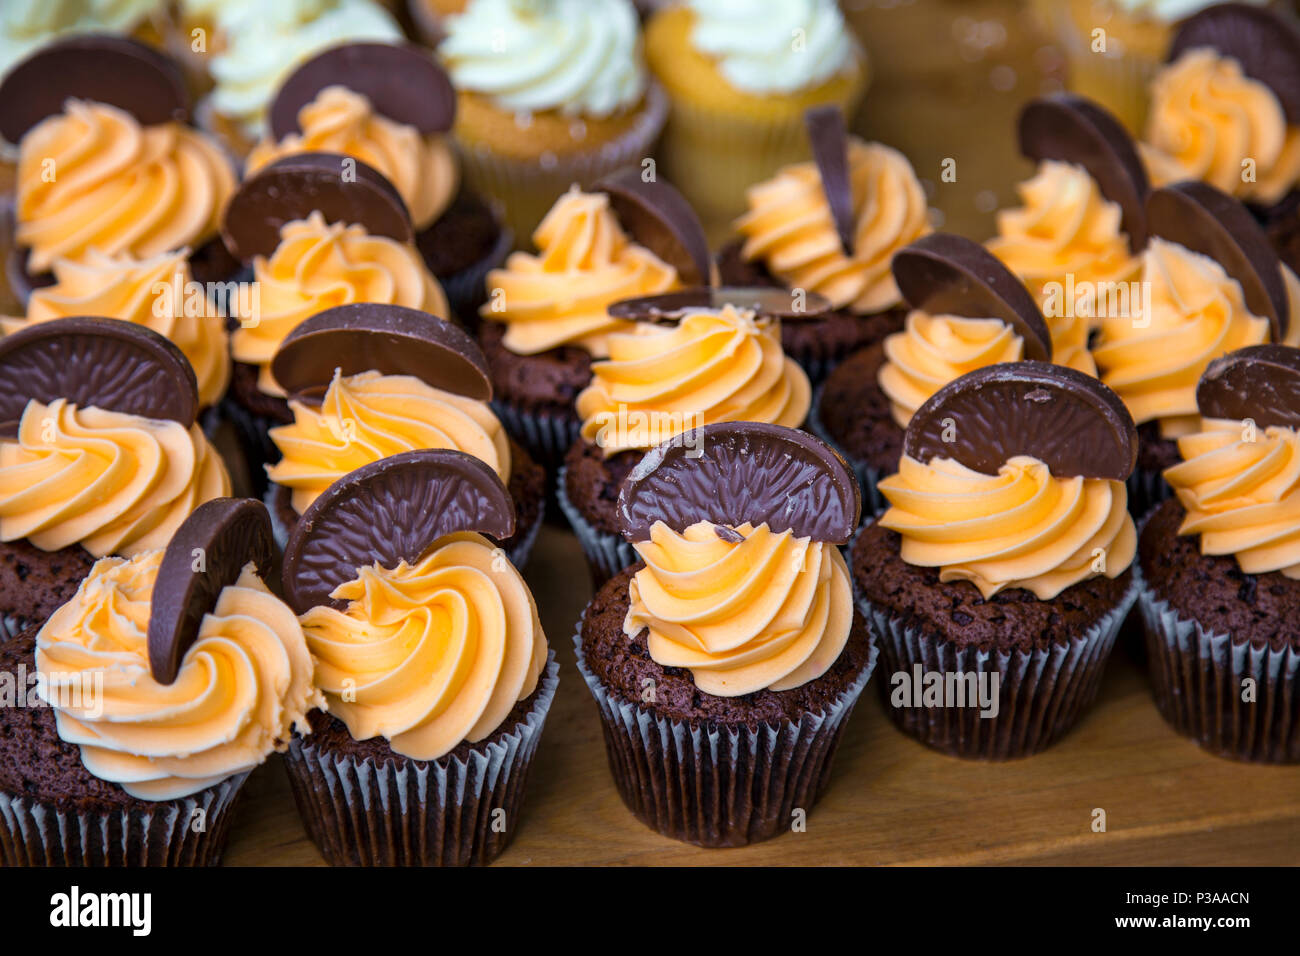 Chocolate orange cupcakes (Street Food Market at Piccadilly, Manchester, UK) - Stock Image